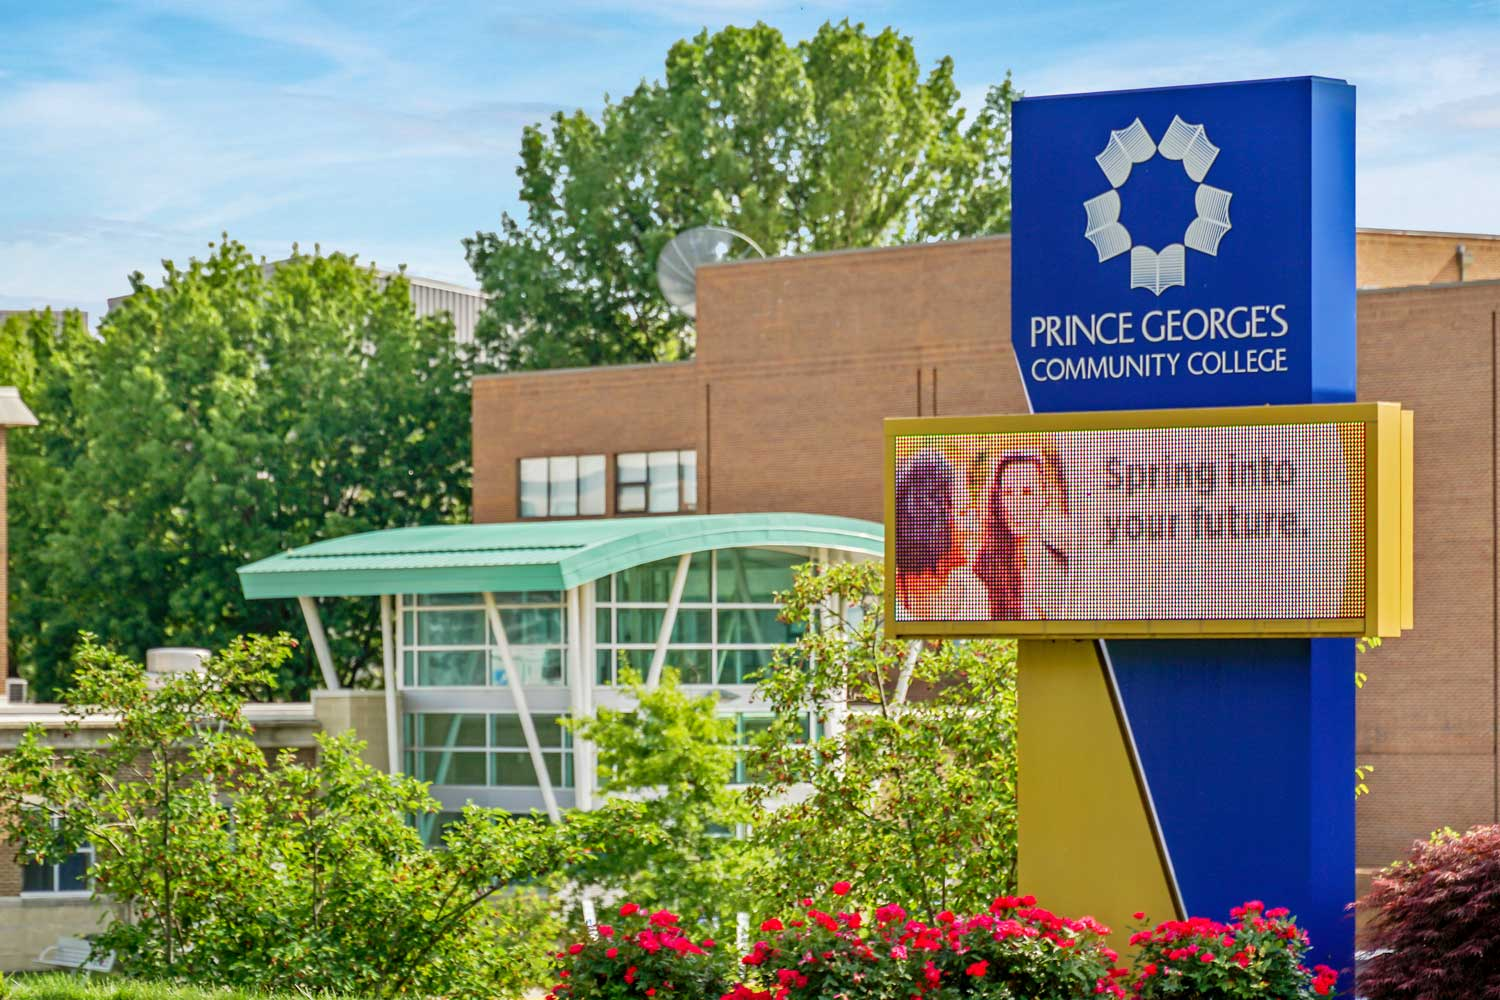 Prince George's Community College is 10 minutes from Columbia Park Apartments